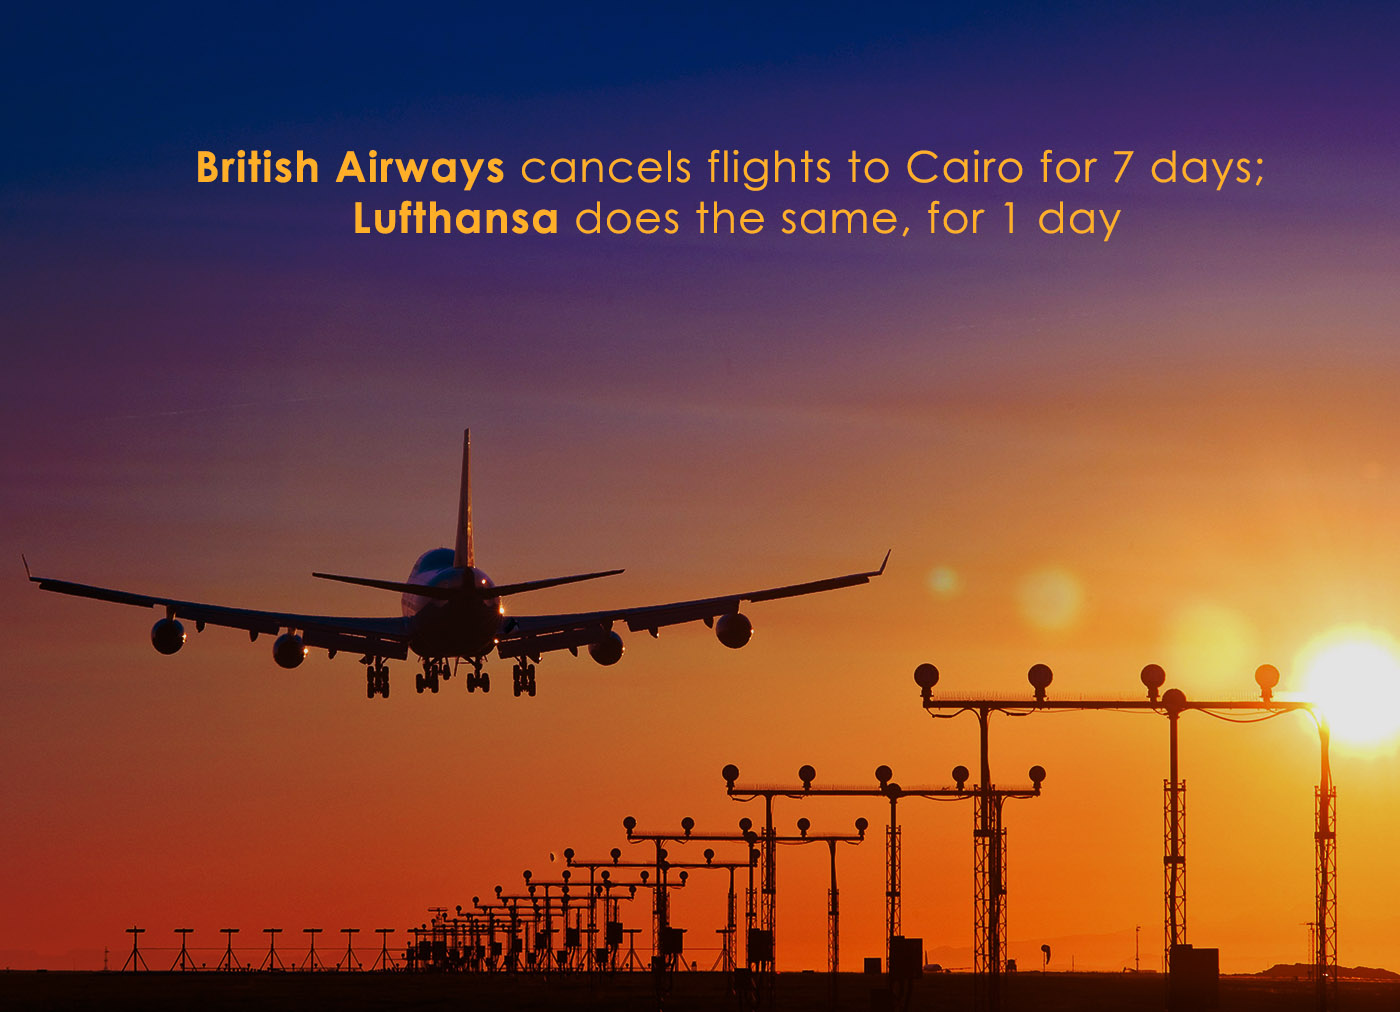 Lufthansa and British Airways Suspended Their Flights towards Cairo